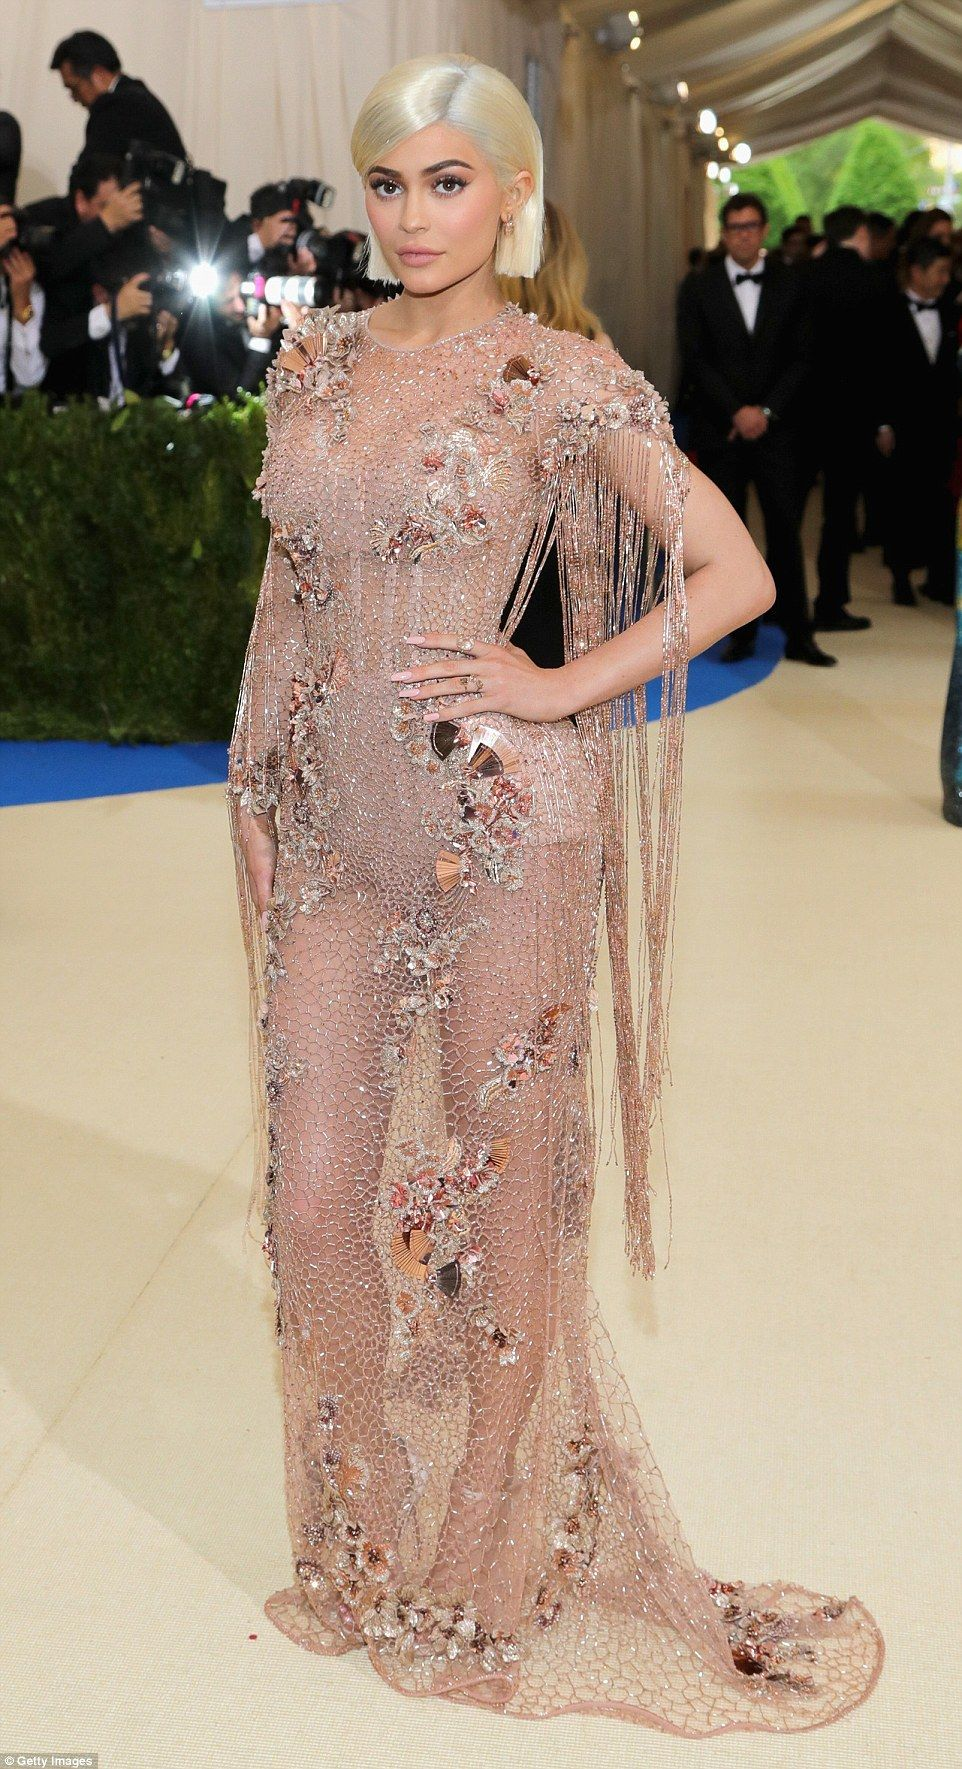 3070870b725 Made an entrance  Kylie Jenner arrived for the 2017 Met Gala in a Versace  gown dripping with sea shell and pebble embellishments